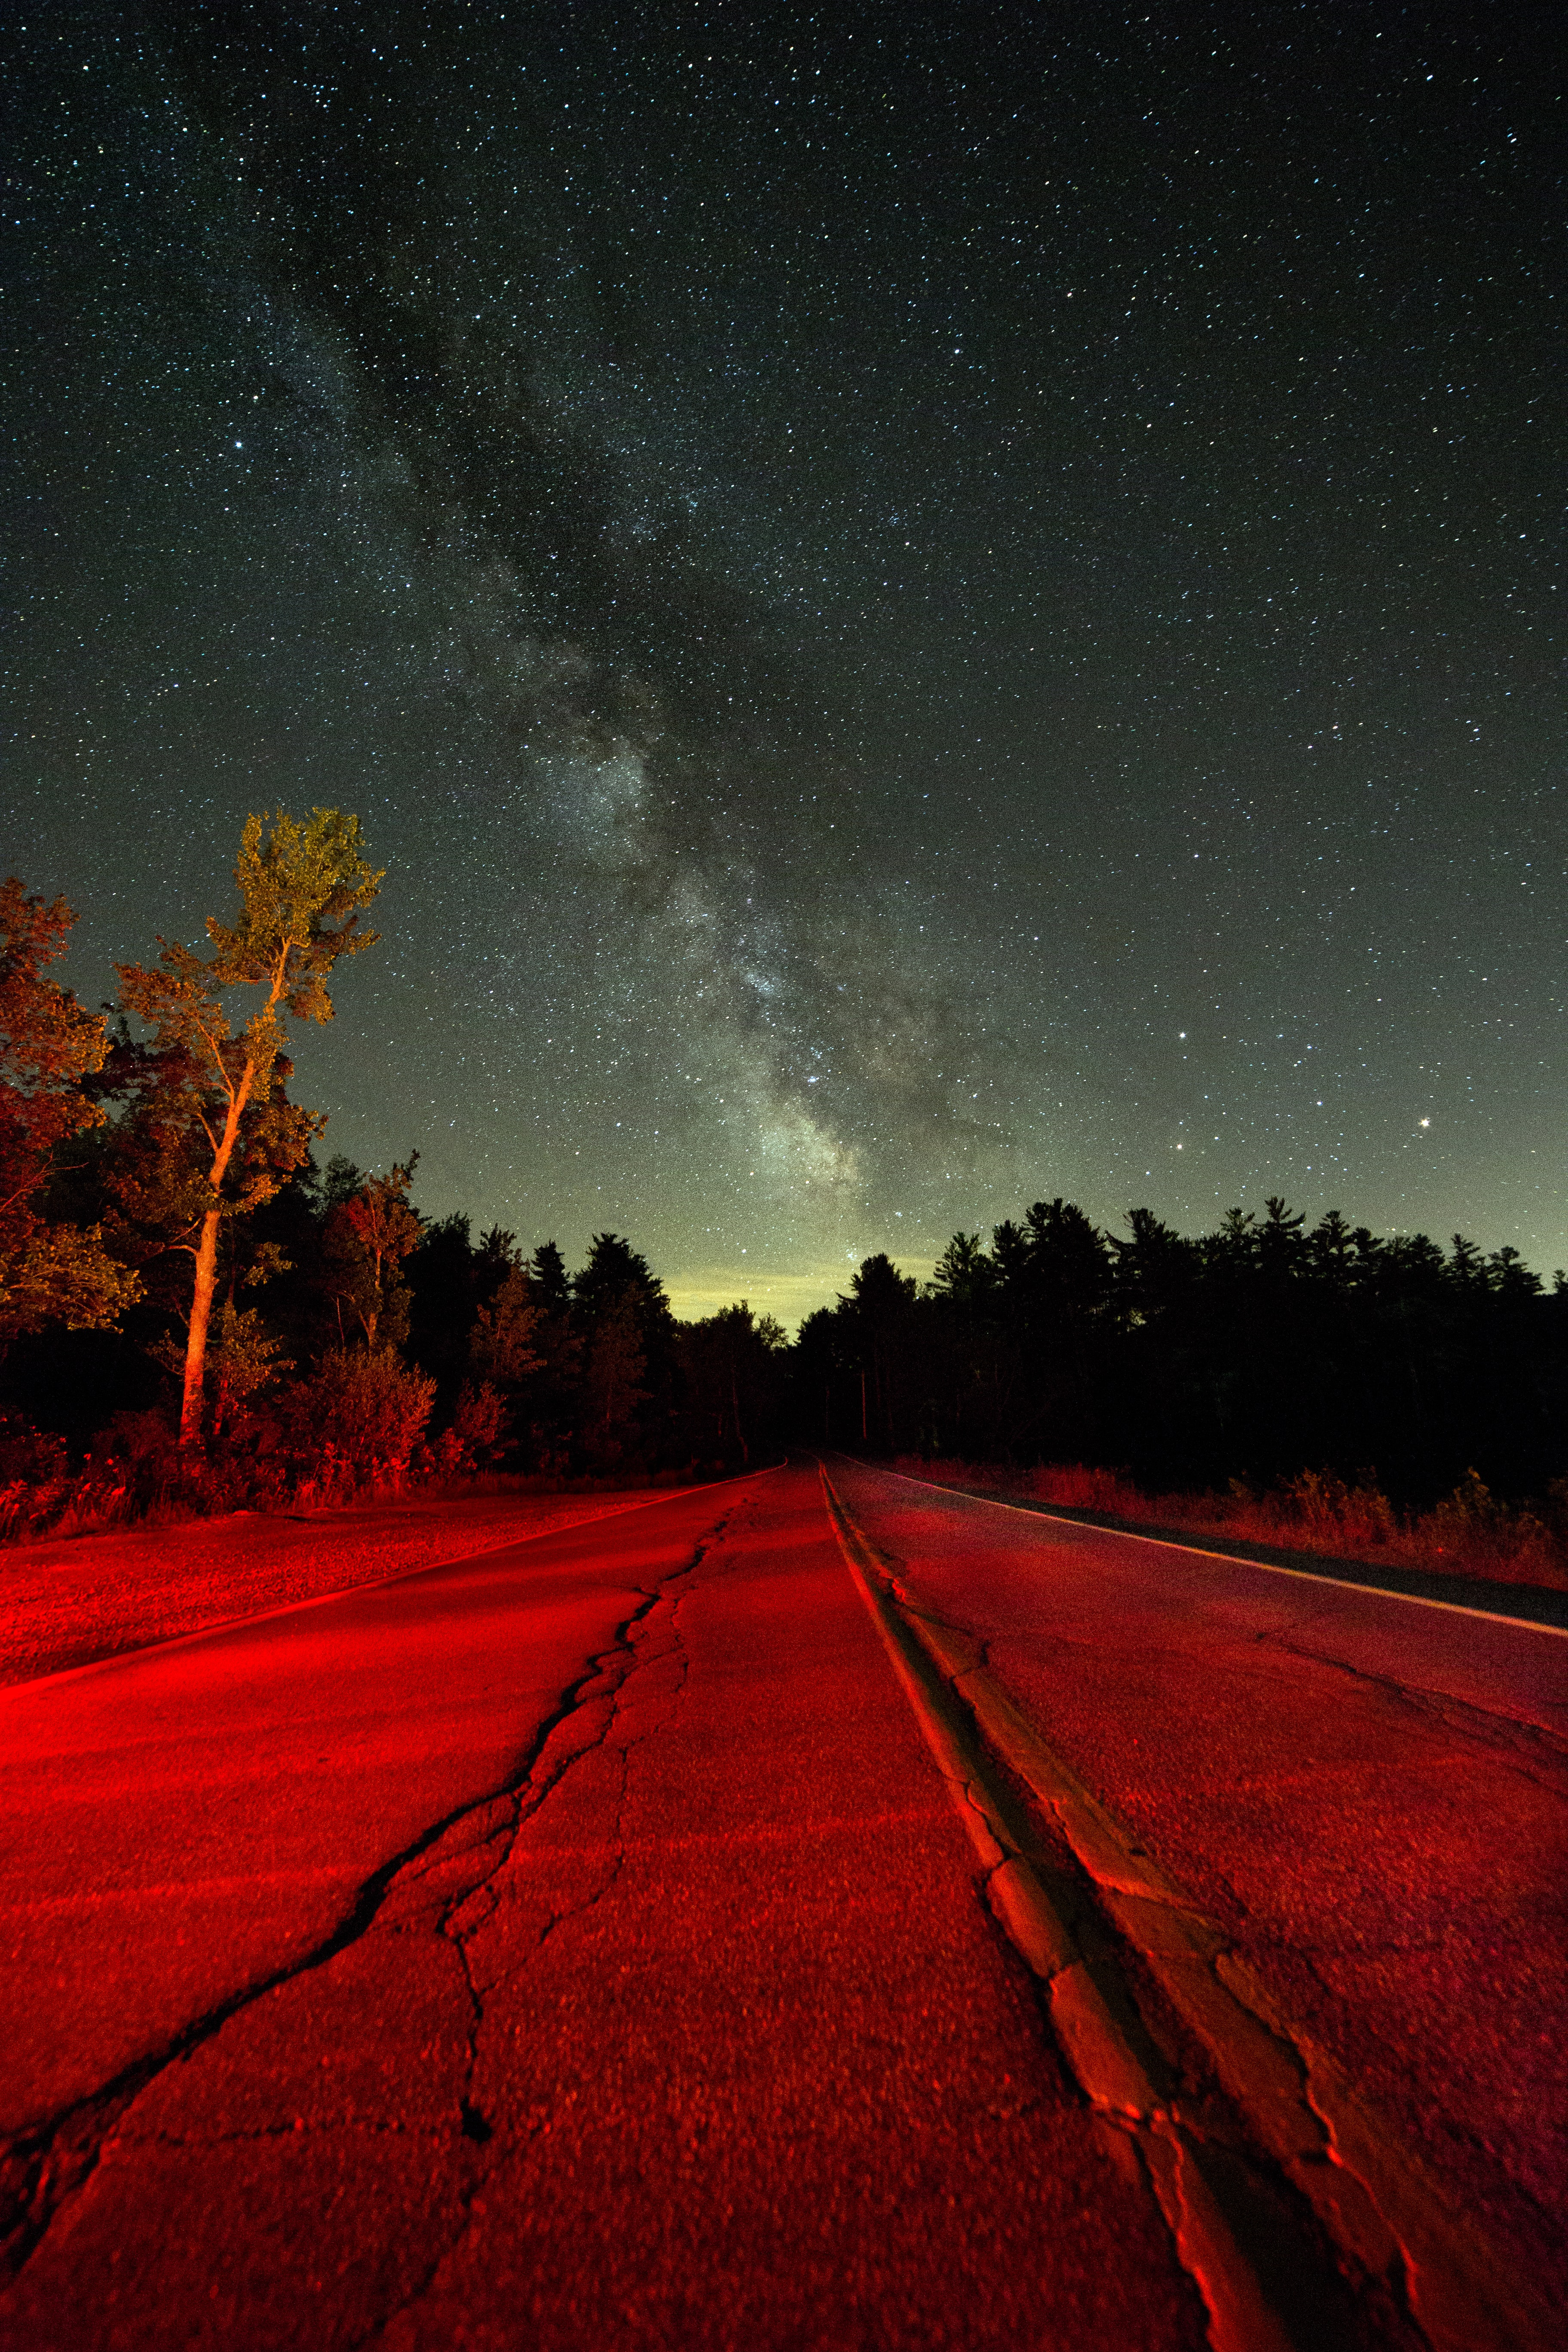 grey concrete straight road near tall trees under white stars at nighttime